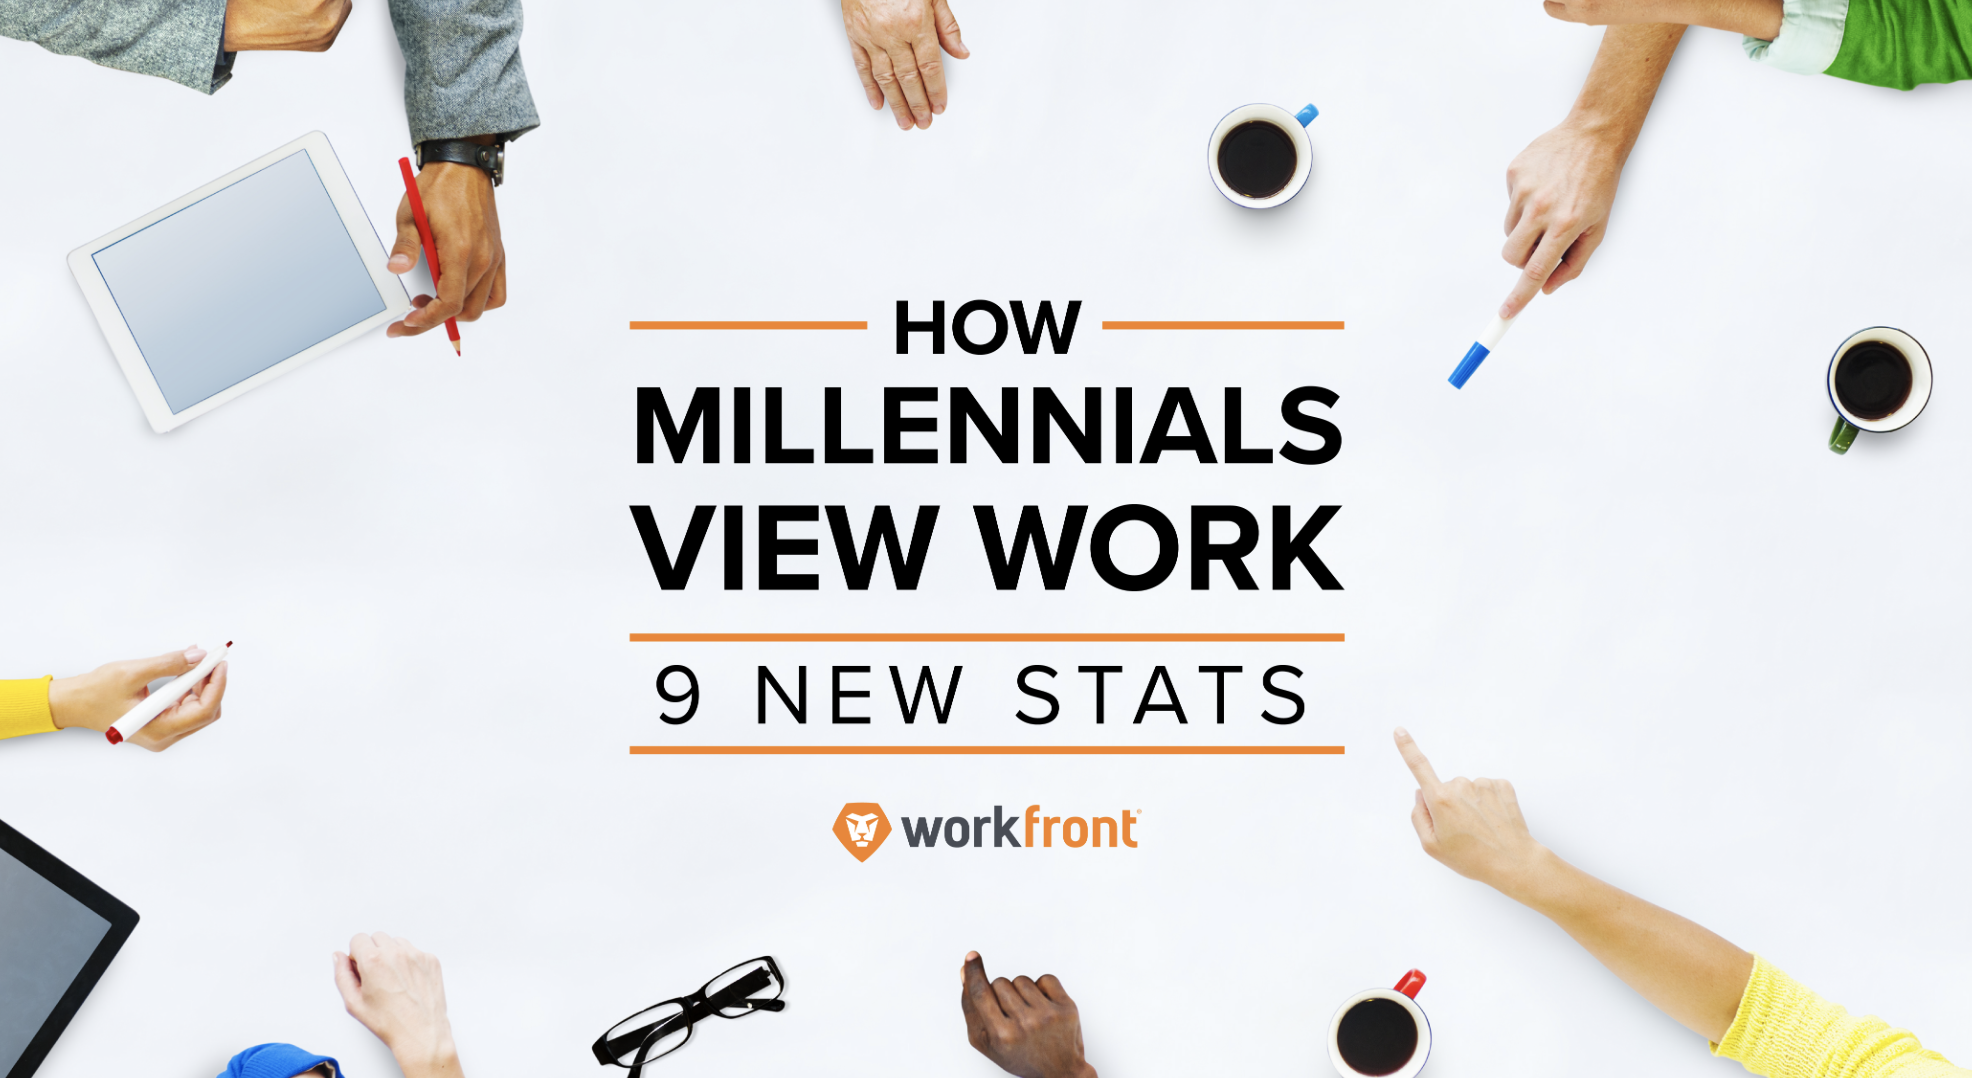 how millennials view work